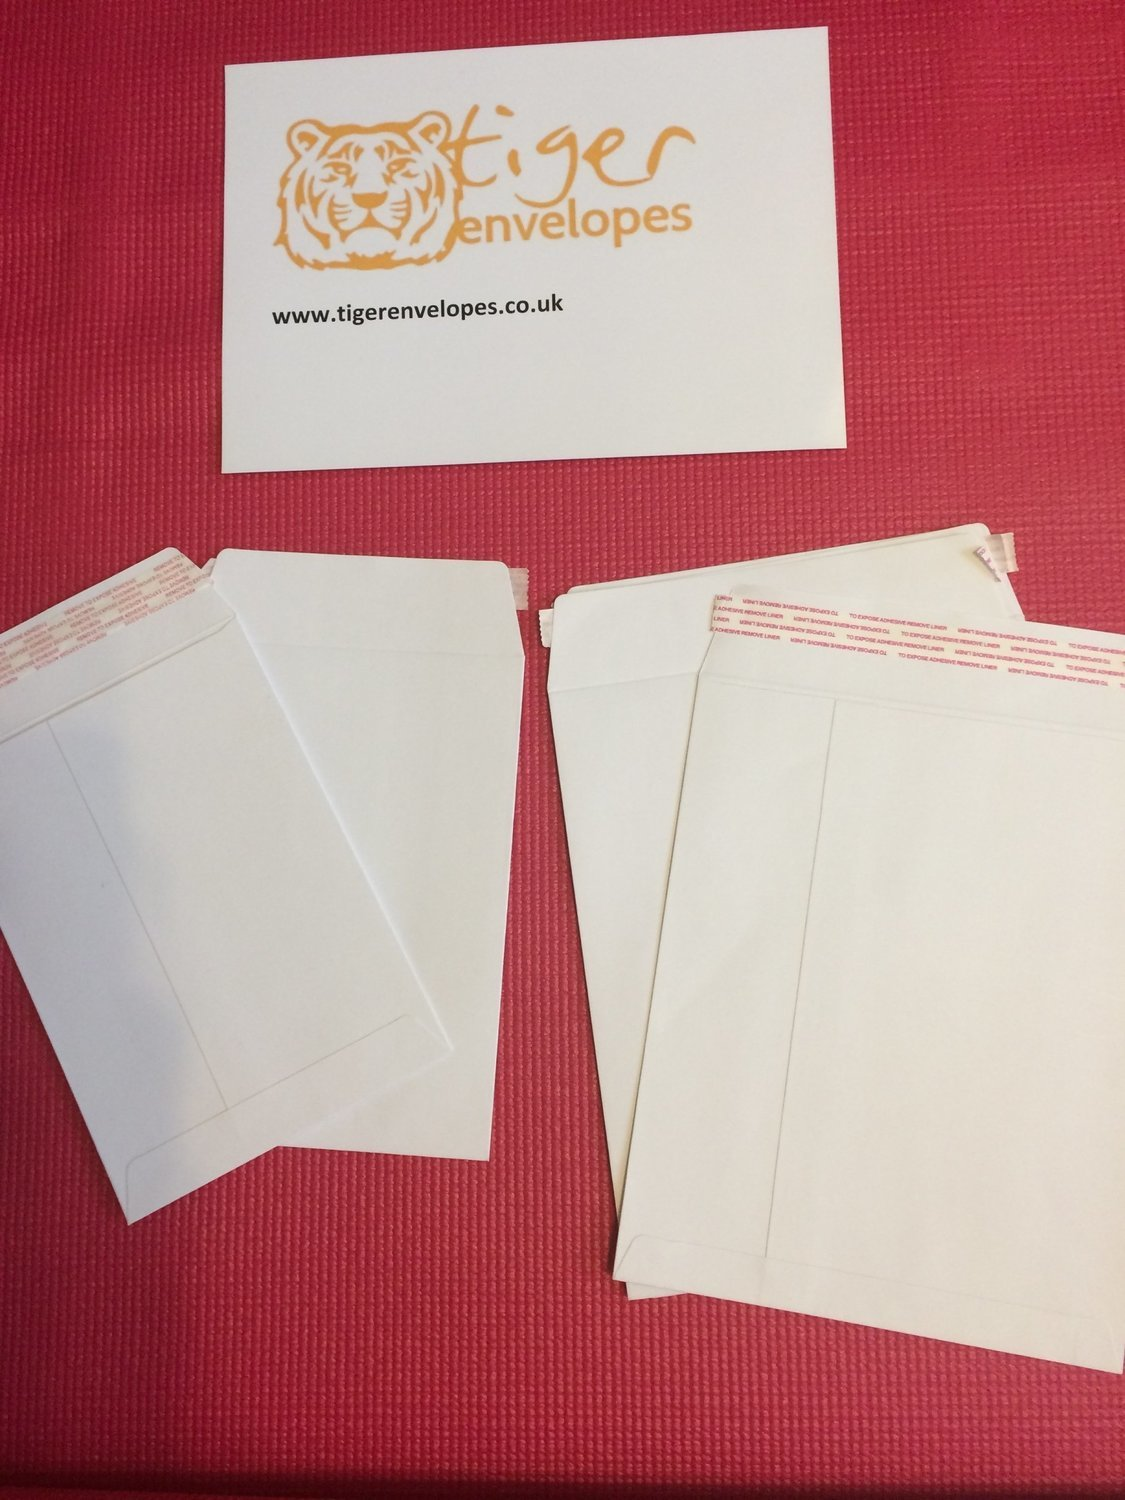 Flapon Semi Board Envelopes 180 Gsm Pockets And Squares Flap On Short Edge